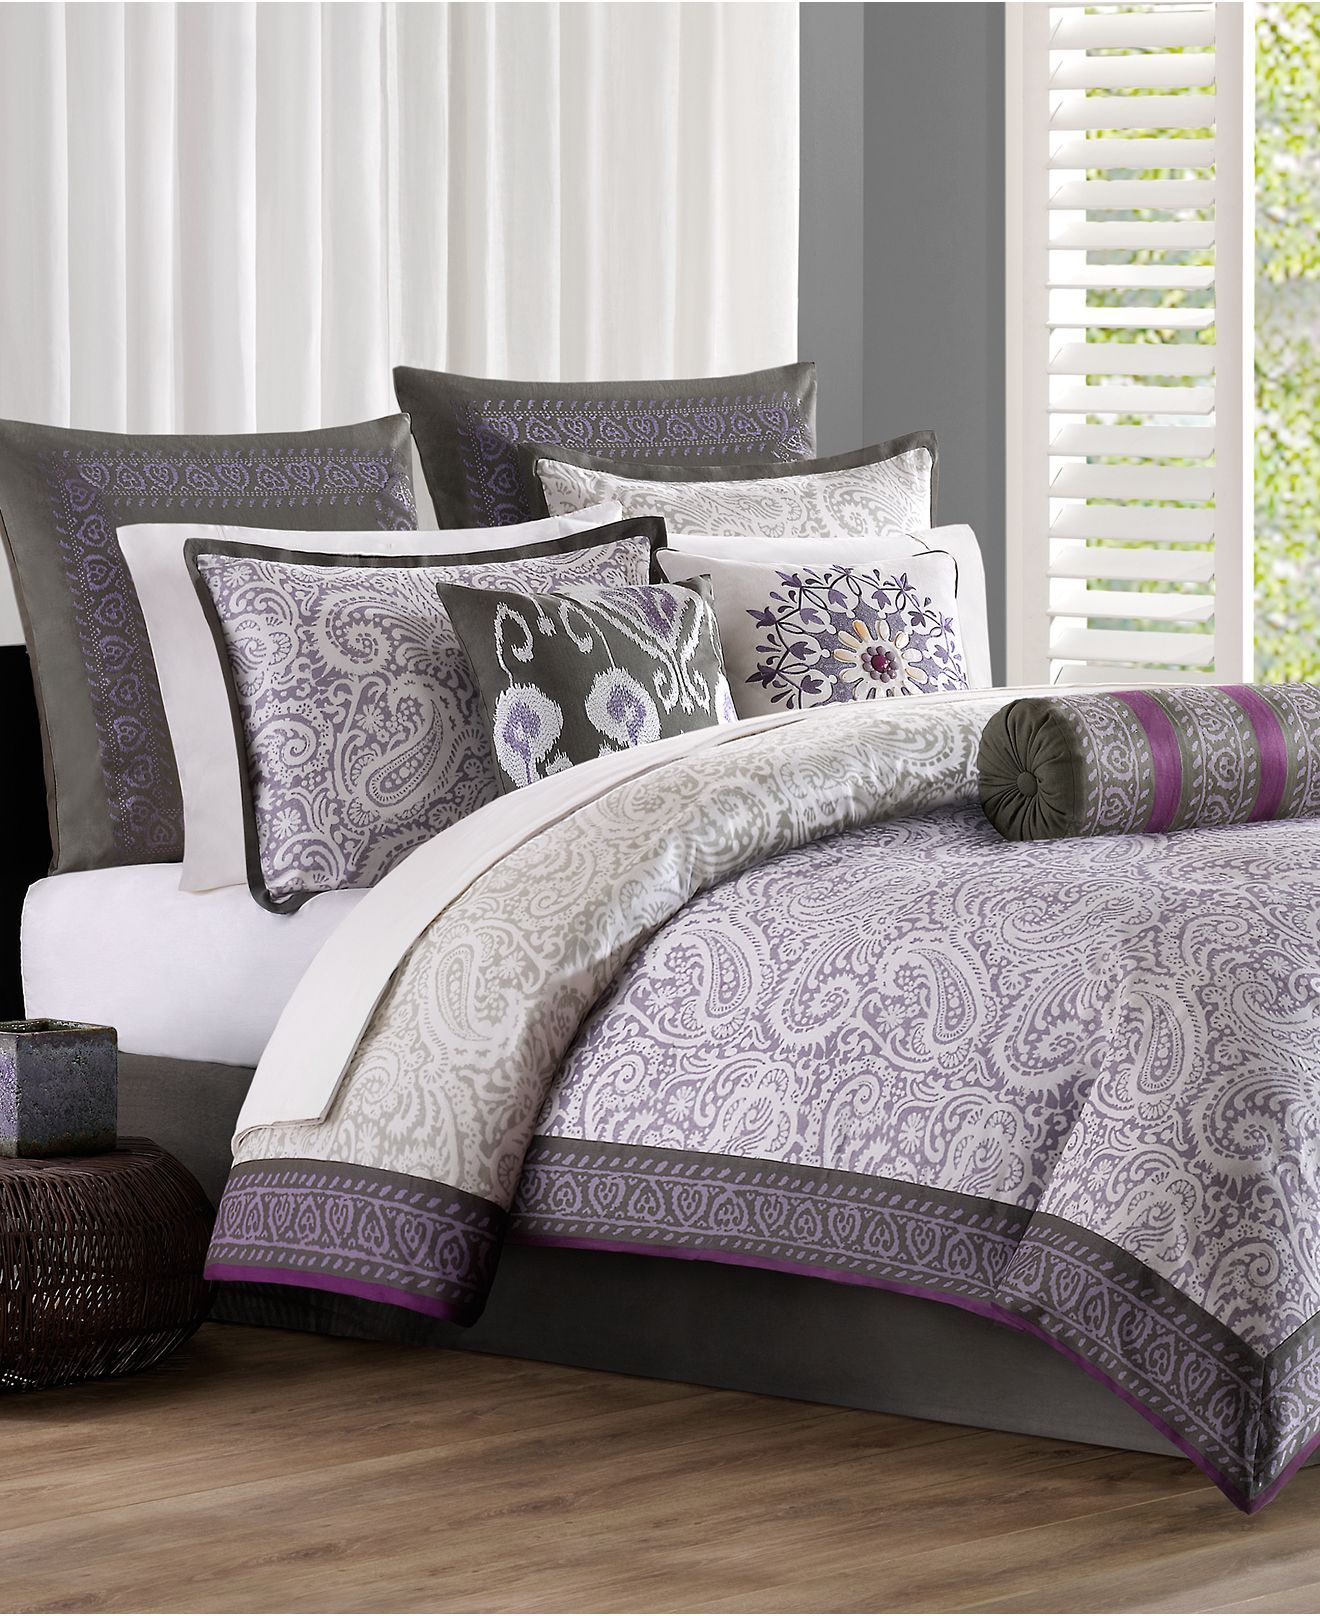 Comforter set (With images) Comforter sets, Paisley